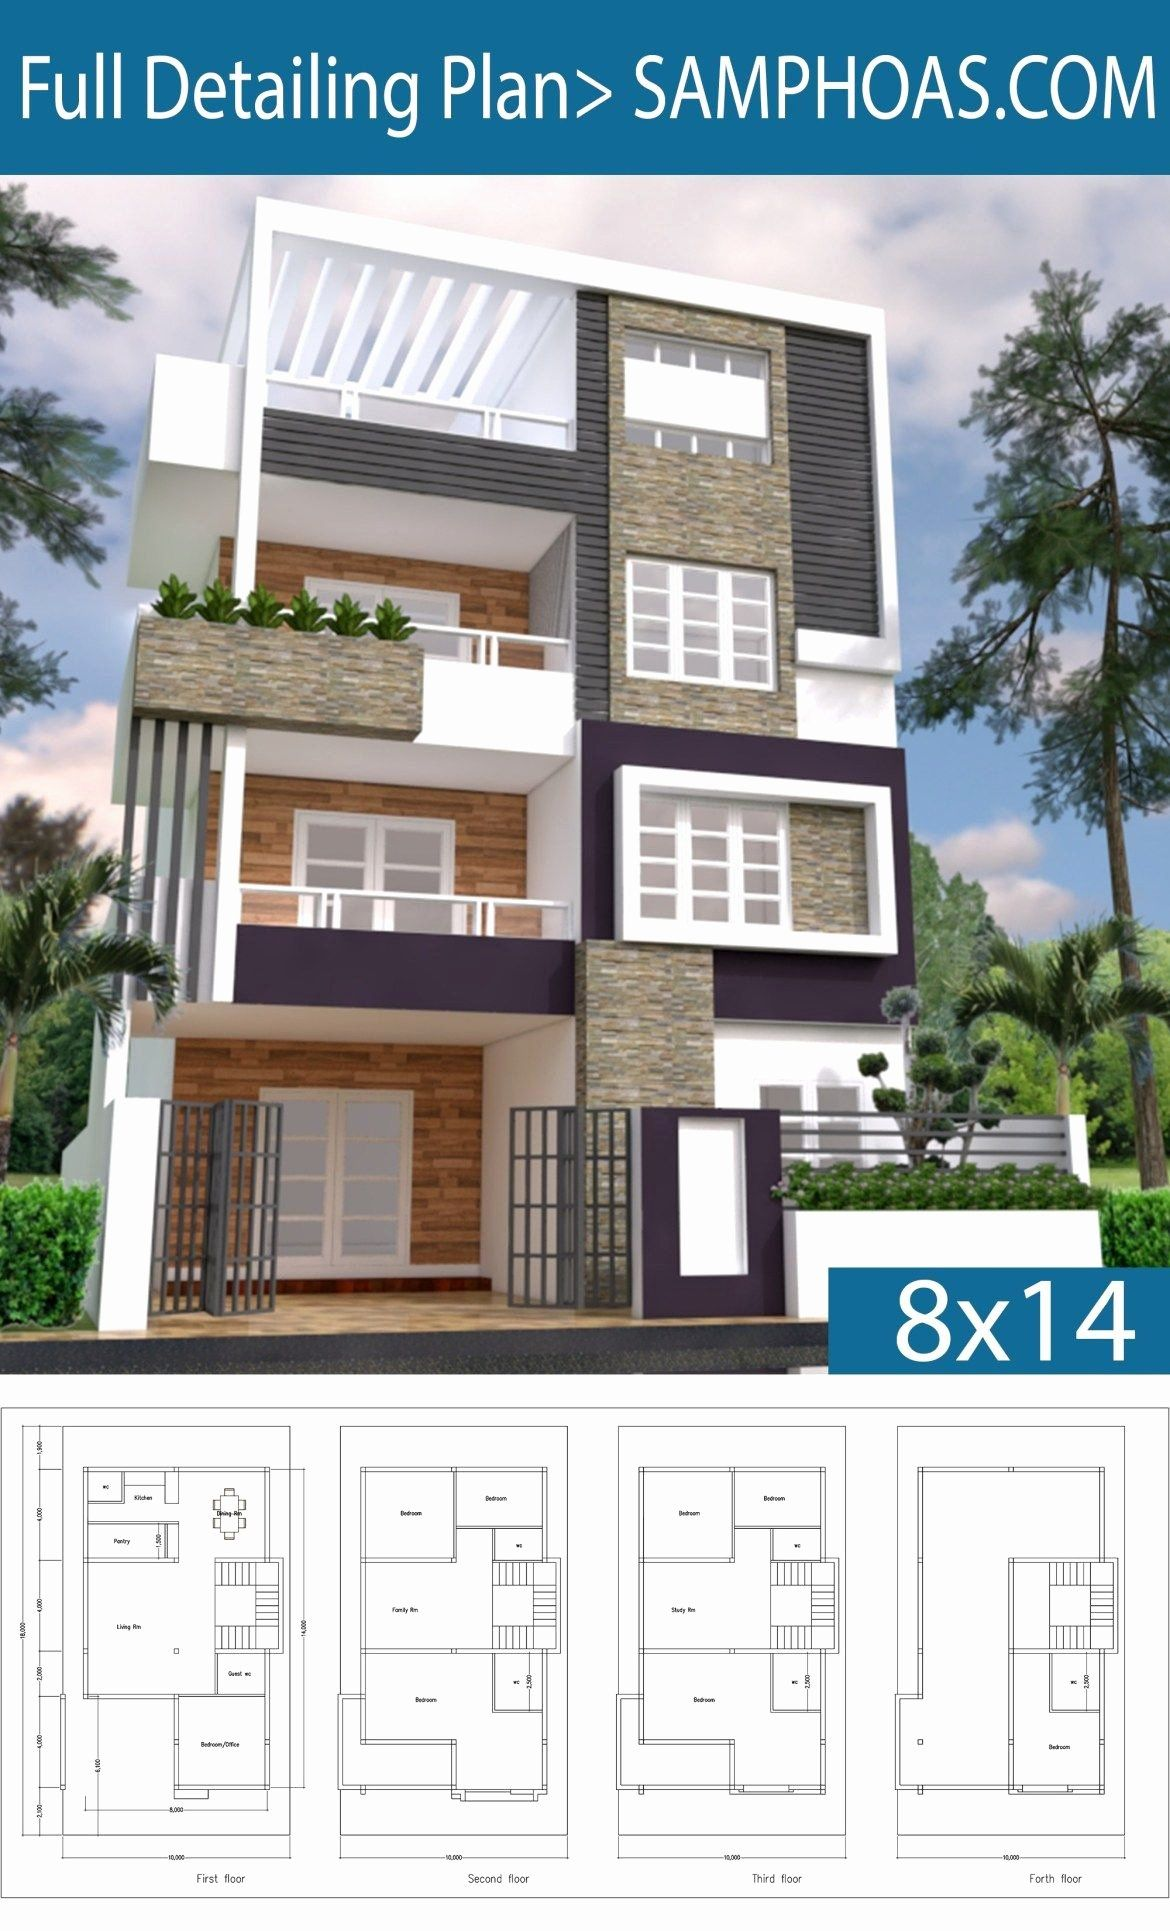 12 8 Bedroom House Plans in 2020 Small house elevation